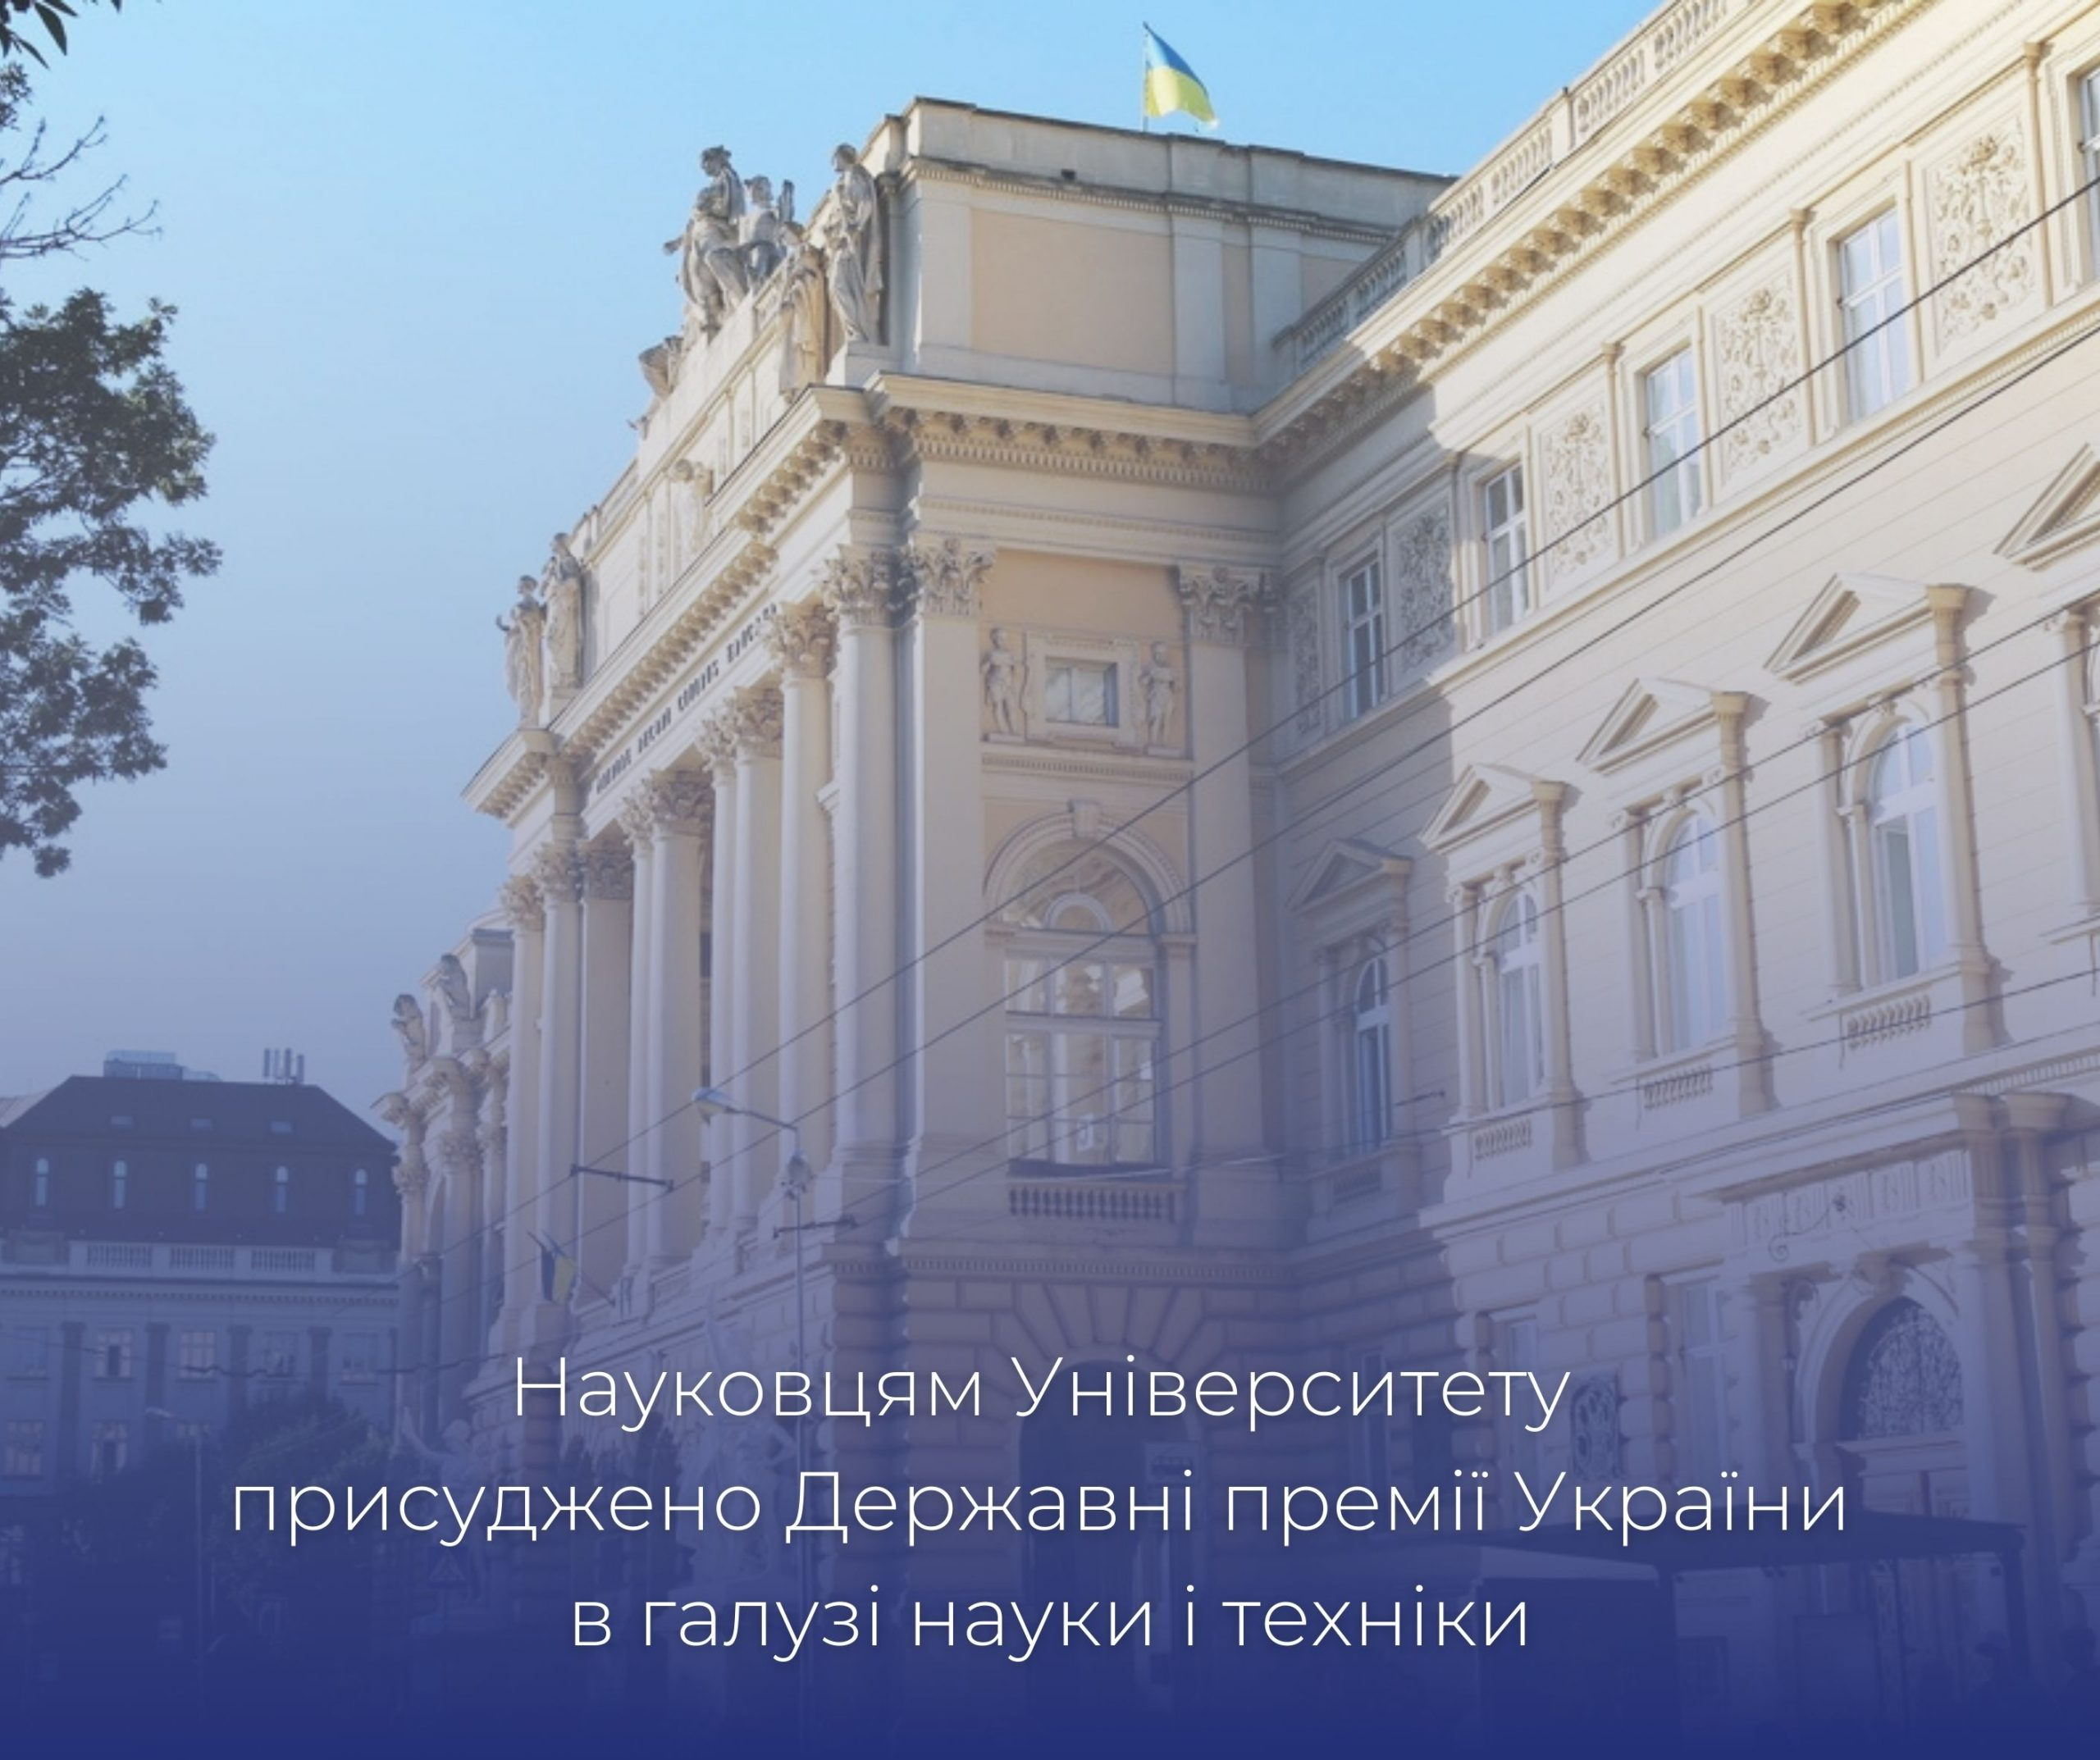 University Scientists have won the State Science and Technology Awards of Ukraine